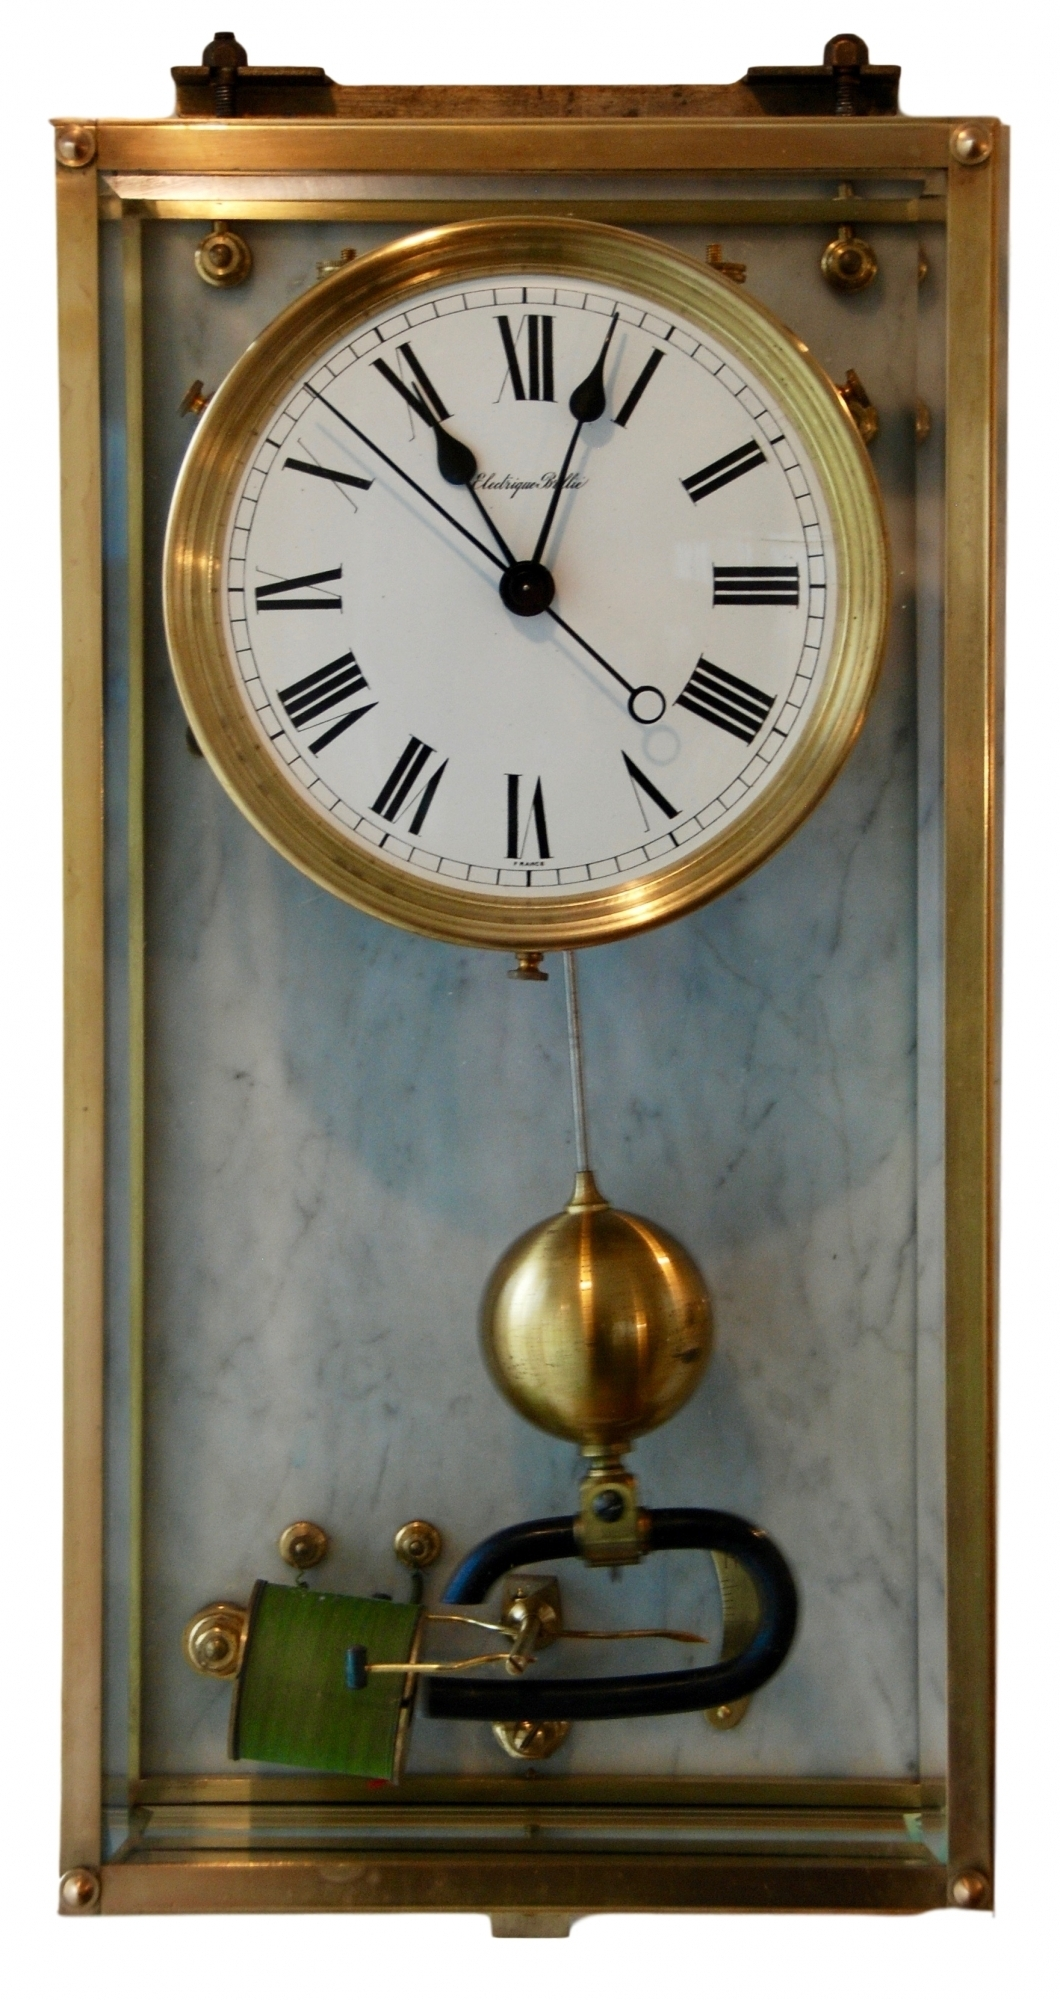 W44 Brass Art Deco Electrique Brillié Wall Clock | Artlistings For Most Recently Released Art Deco Wall Clock (View 17 of 20)